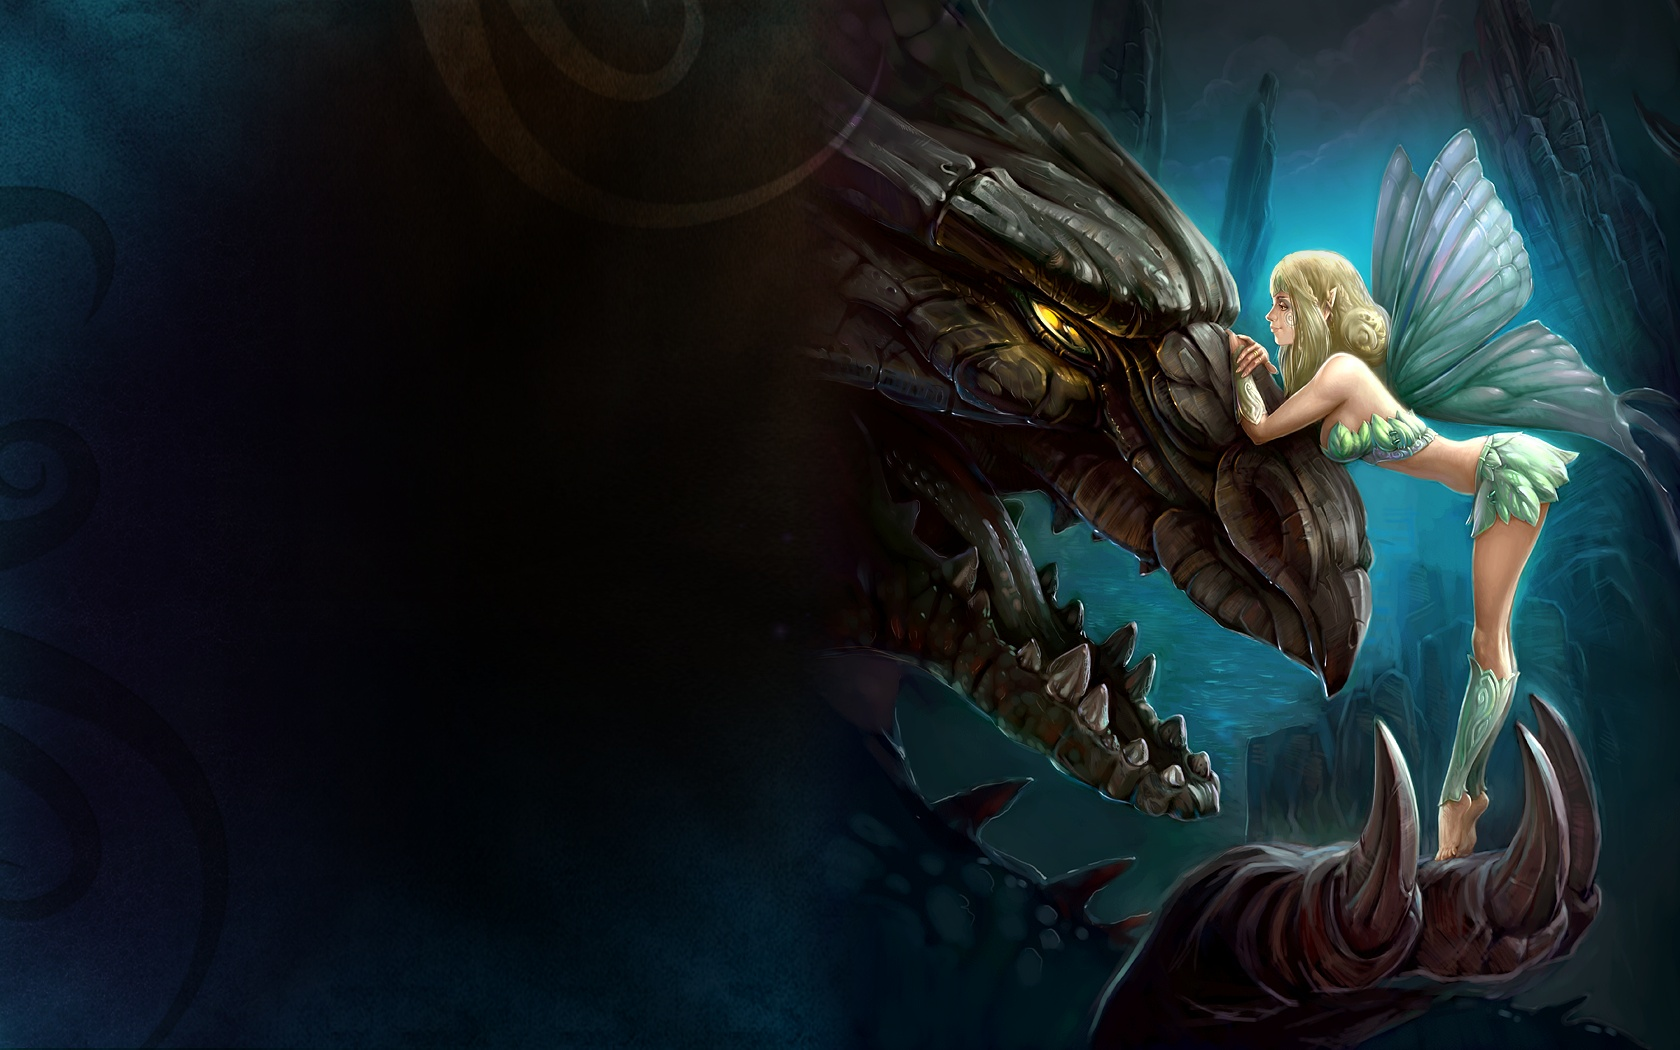 Dragons images Dragon and Fairy HD wallpaper and background photos 1680x1050